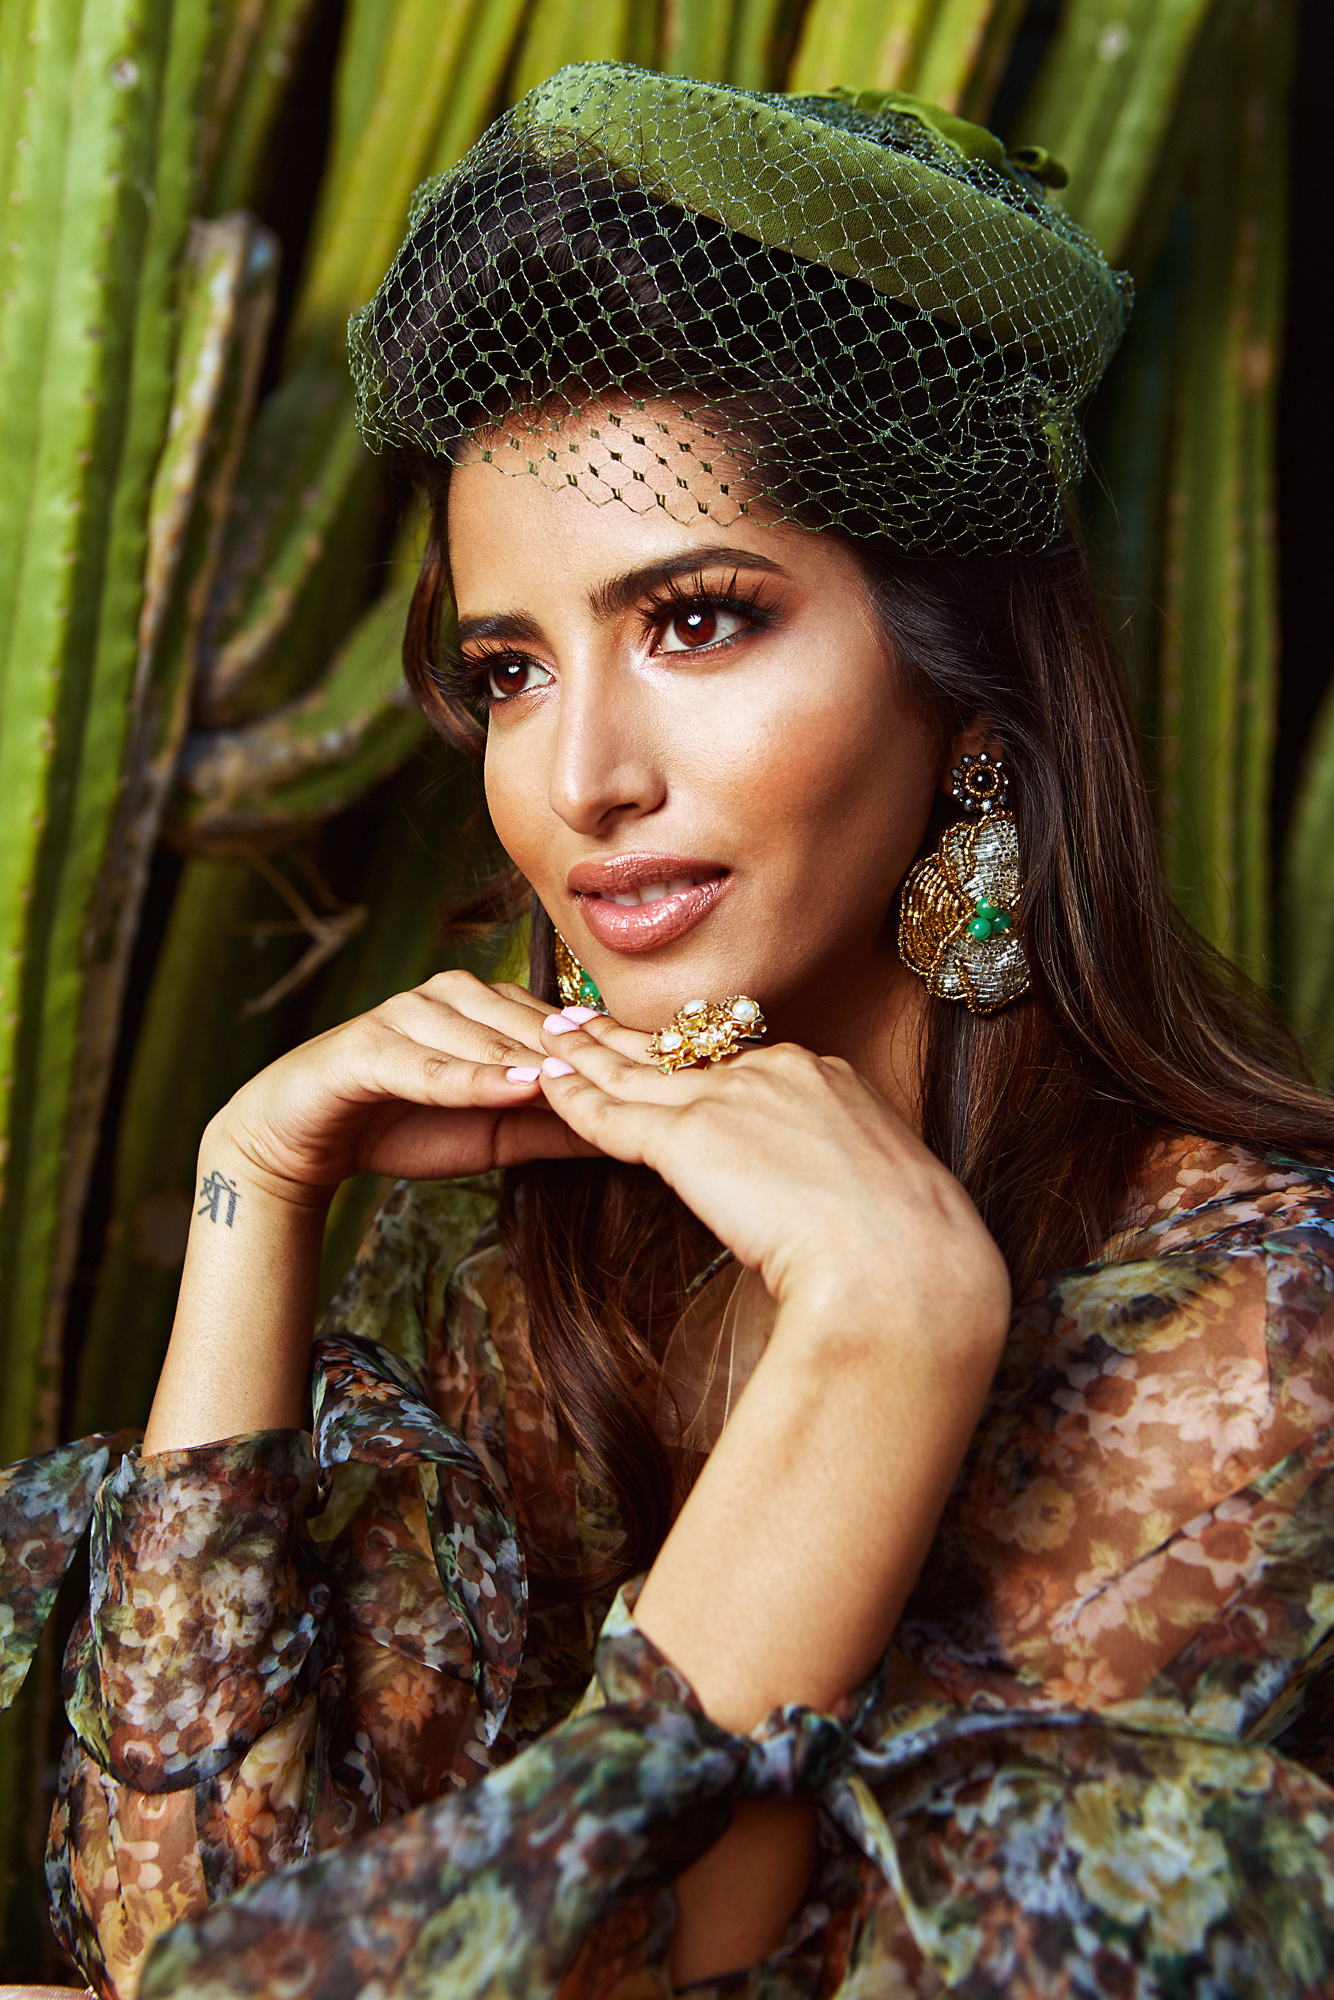 manasvi-mamgai-for-new-face-magazine-by-